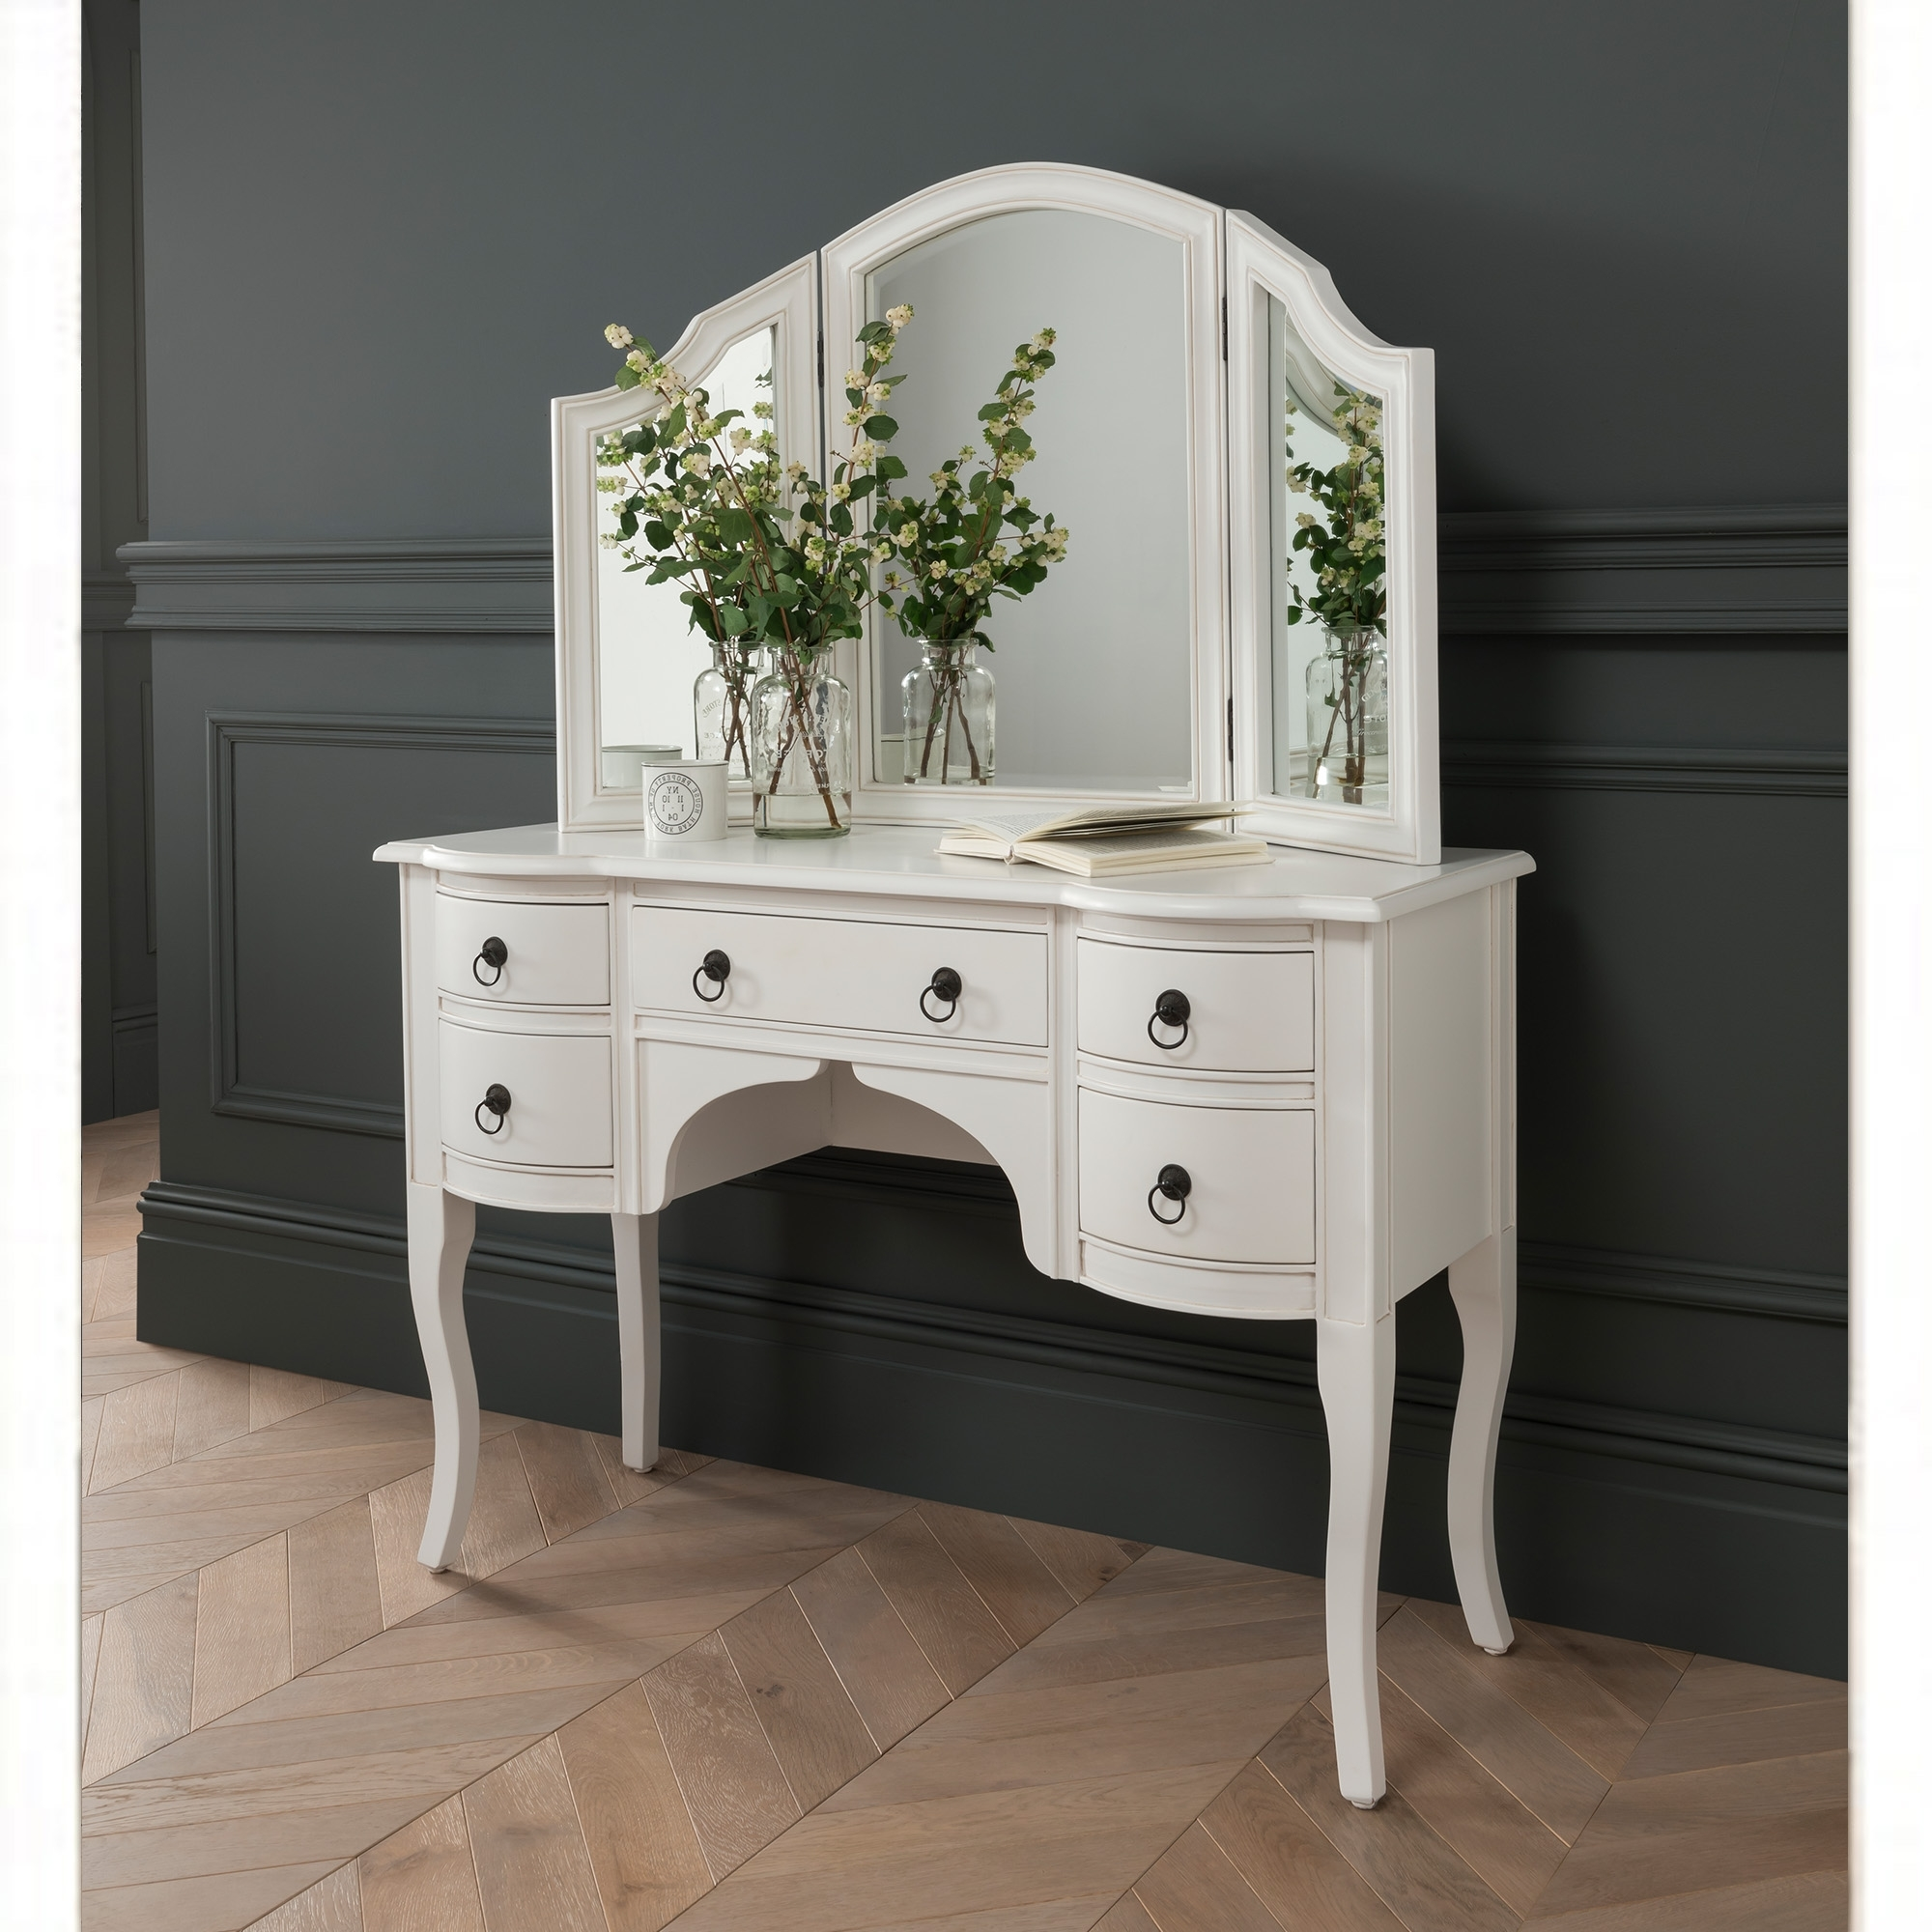 Antique French Style White Finished Dressing Table Homesdirect365